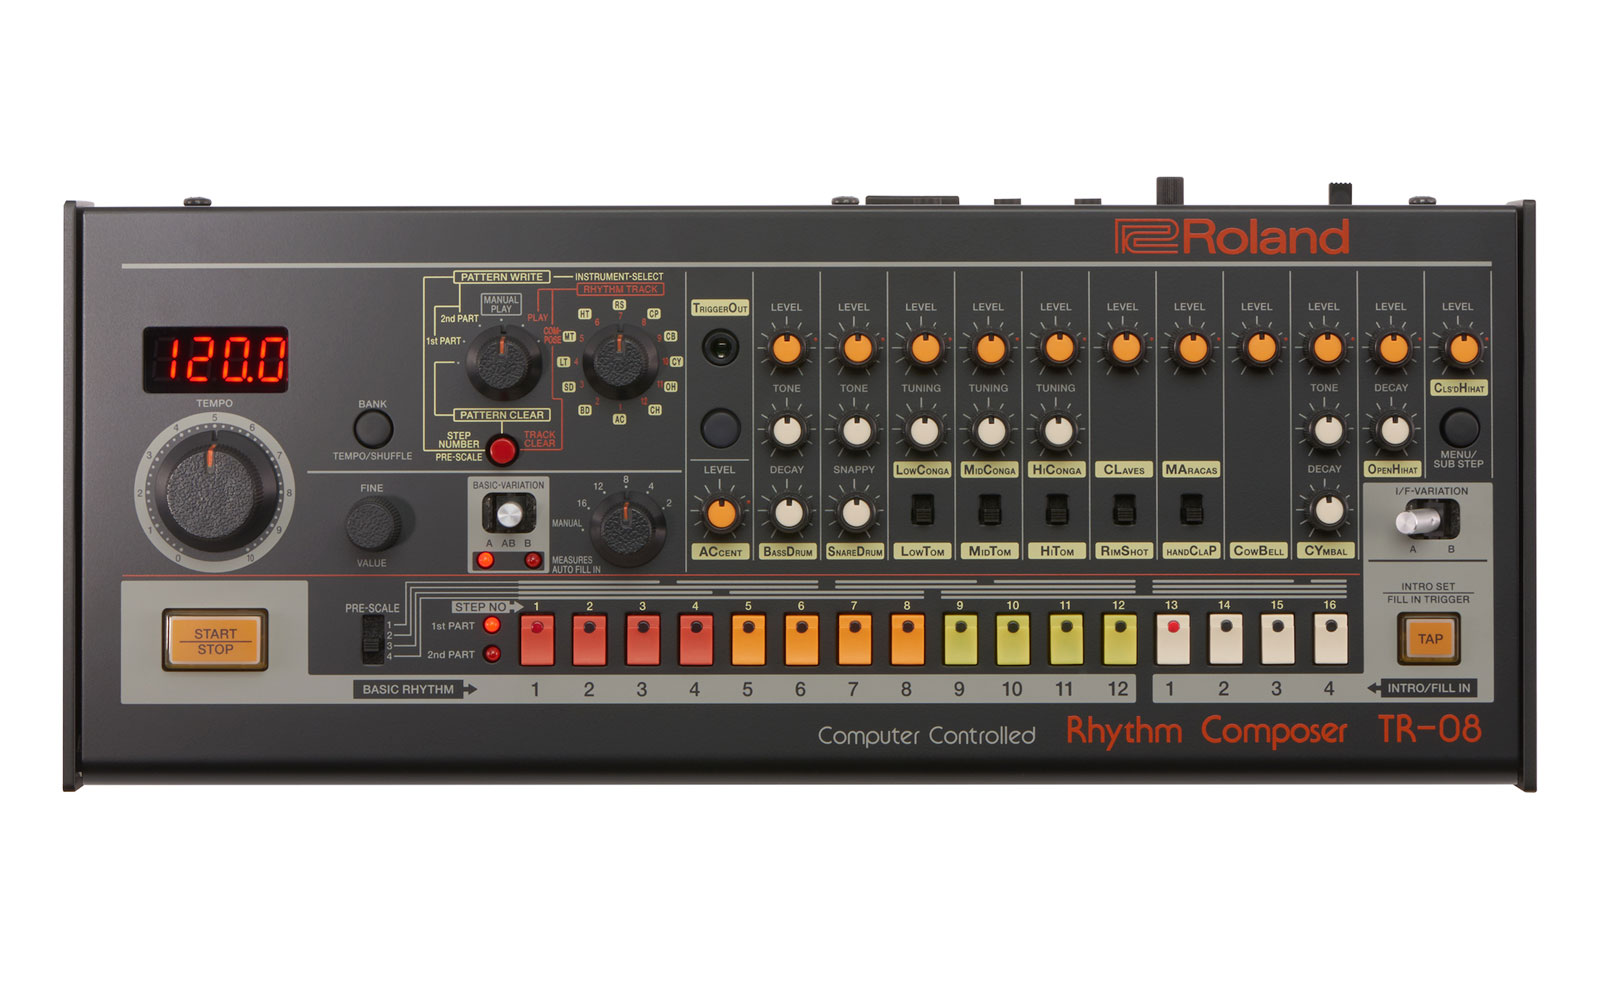 roland s revival of the iconic tr 808 makes classic sounds portable